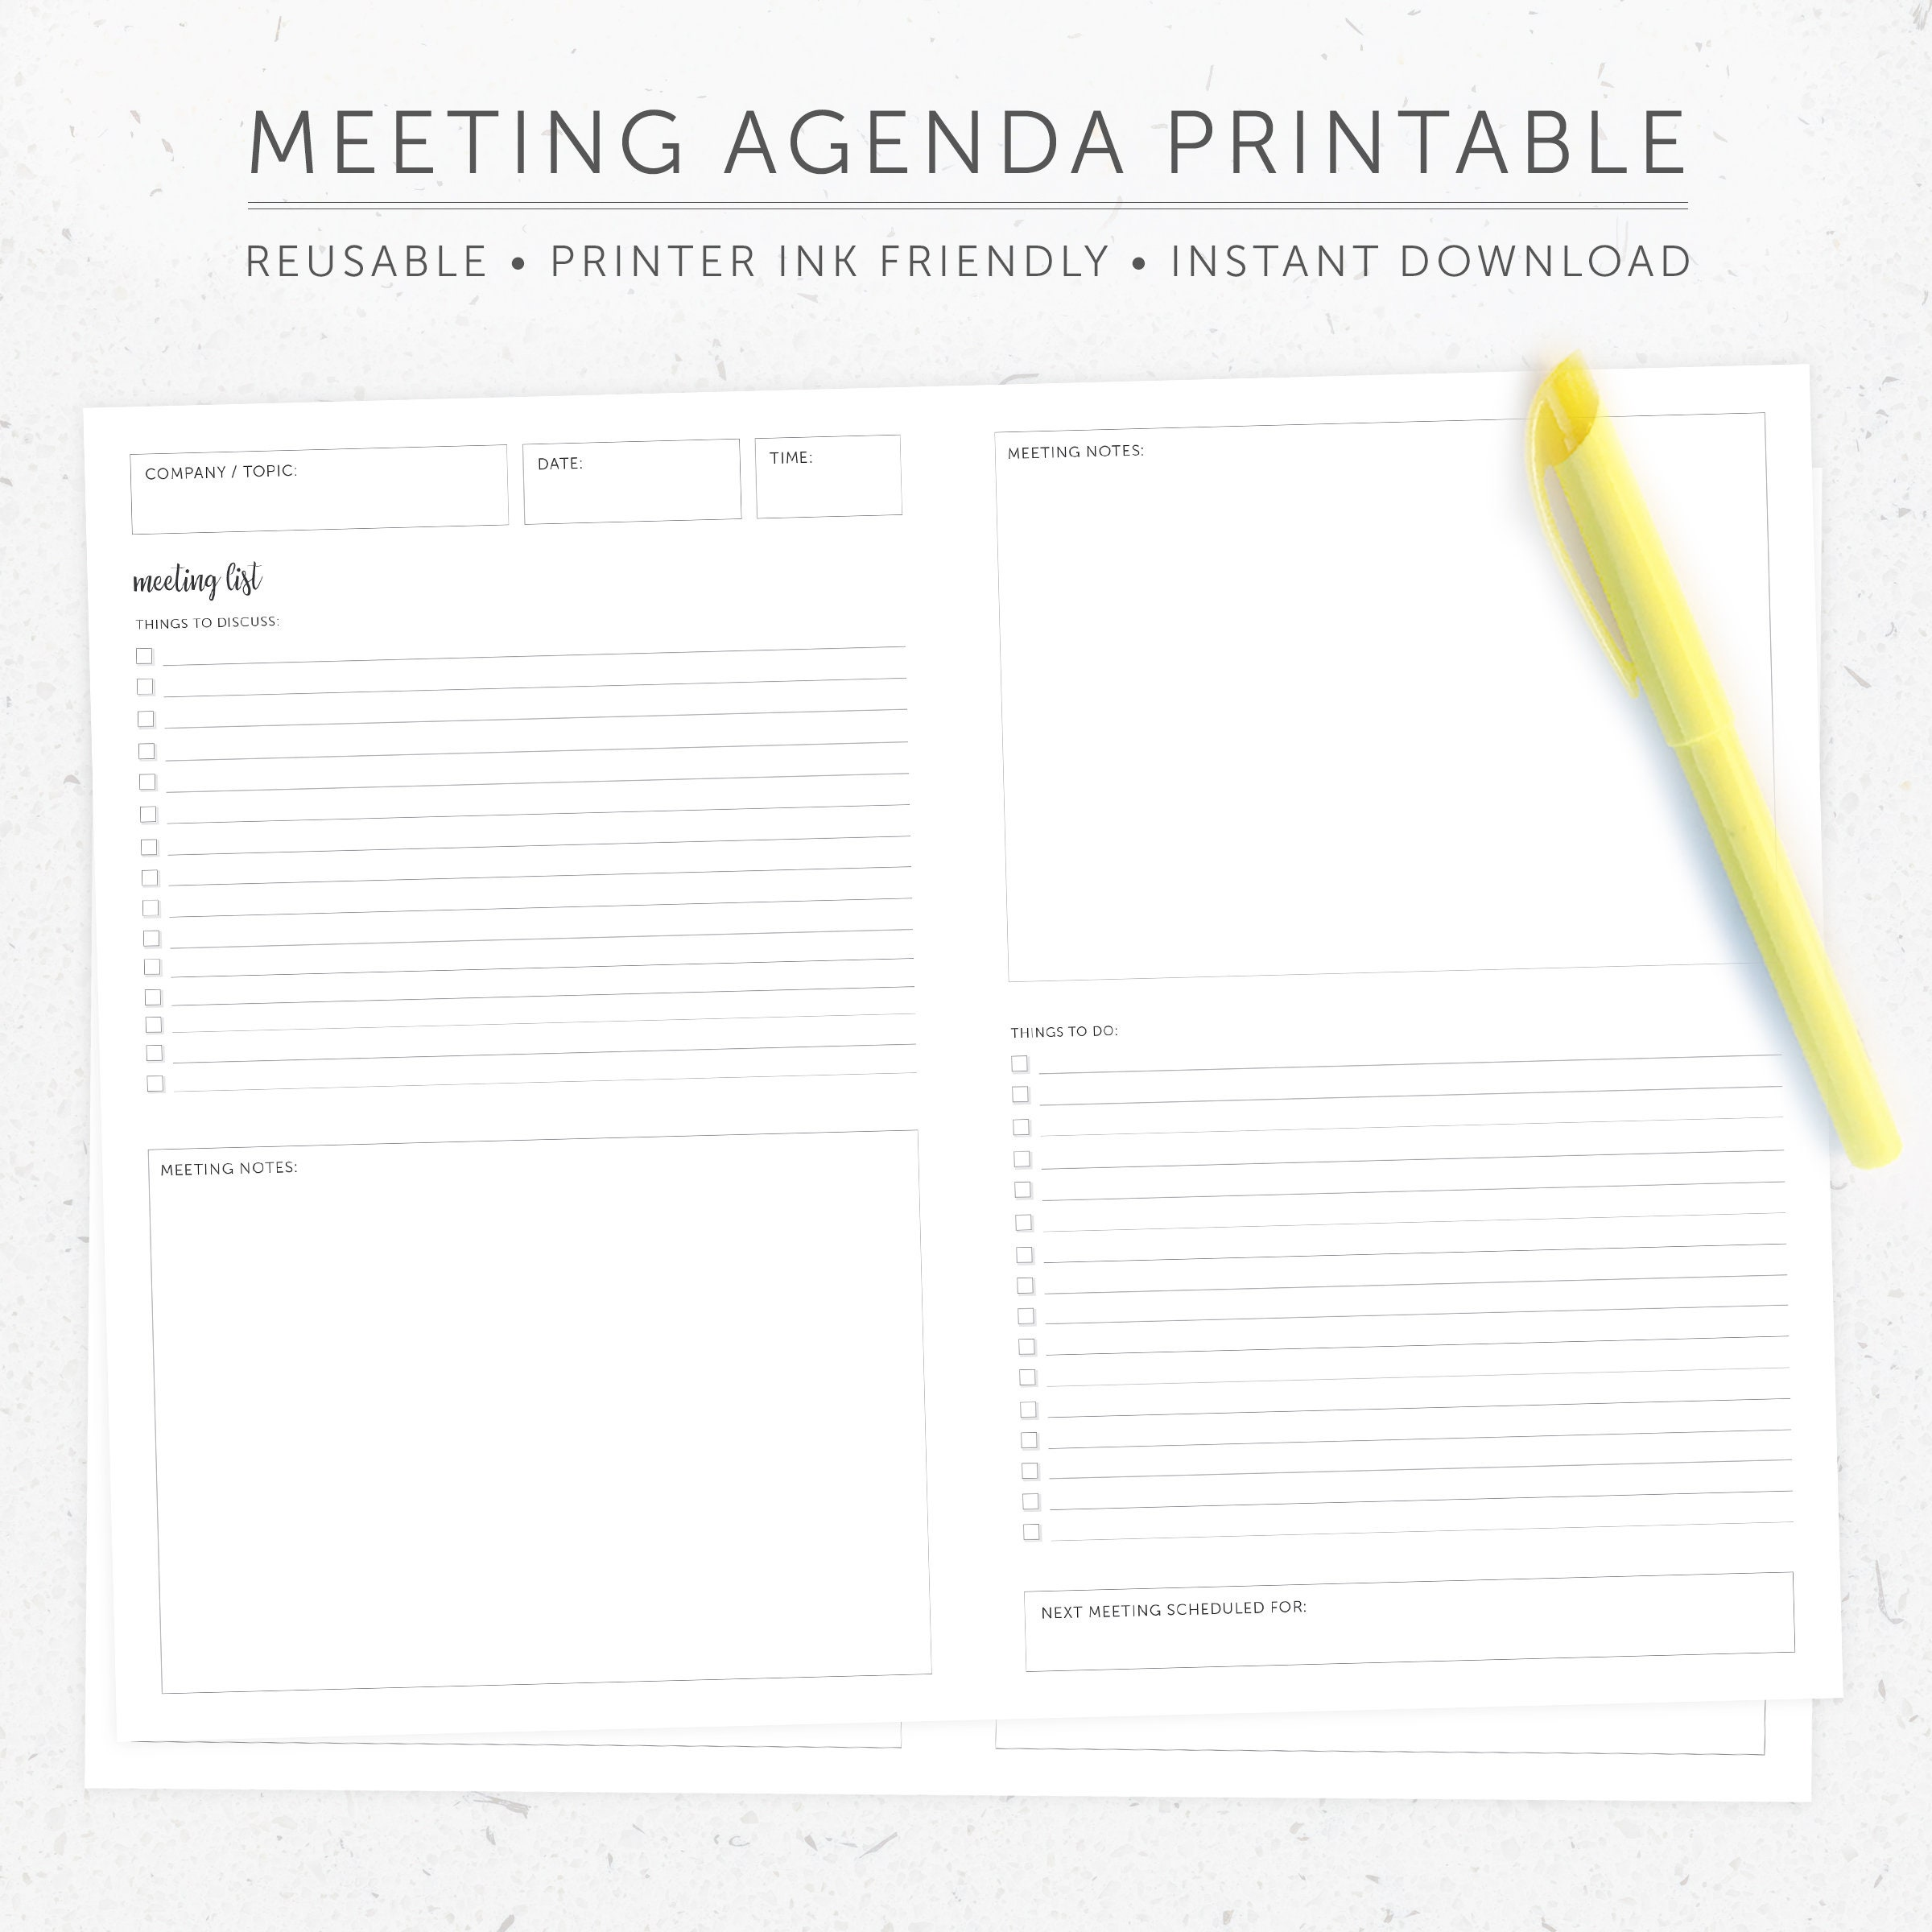 agenda and actions focused meeting minutes template